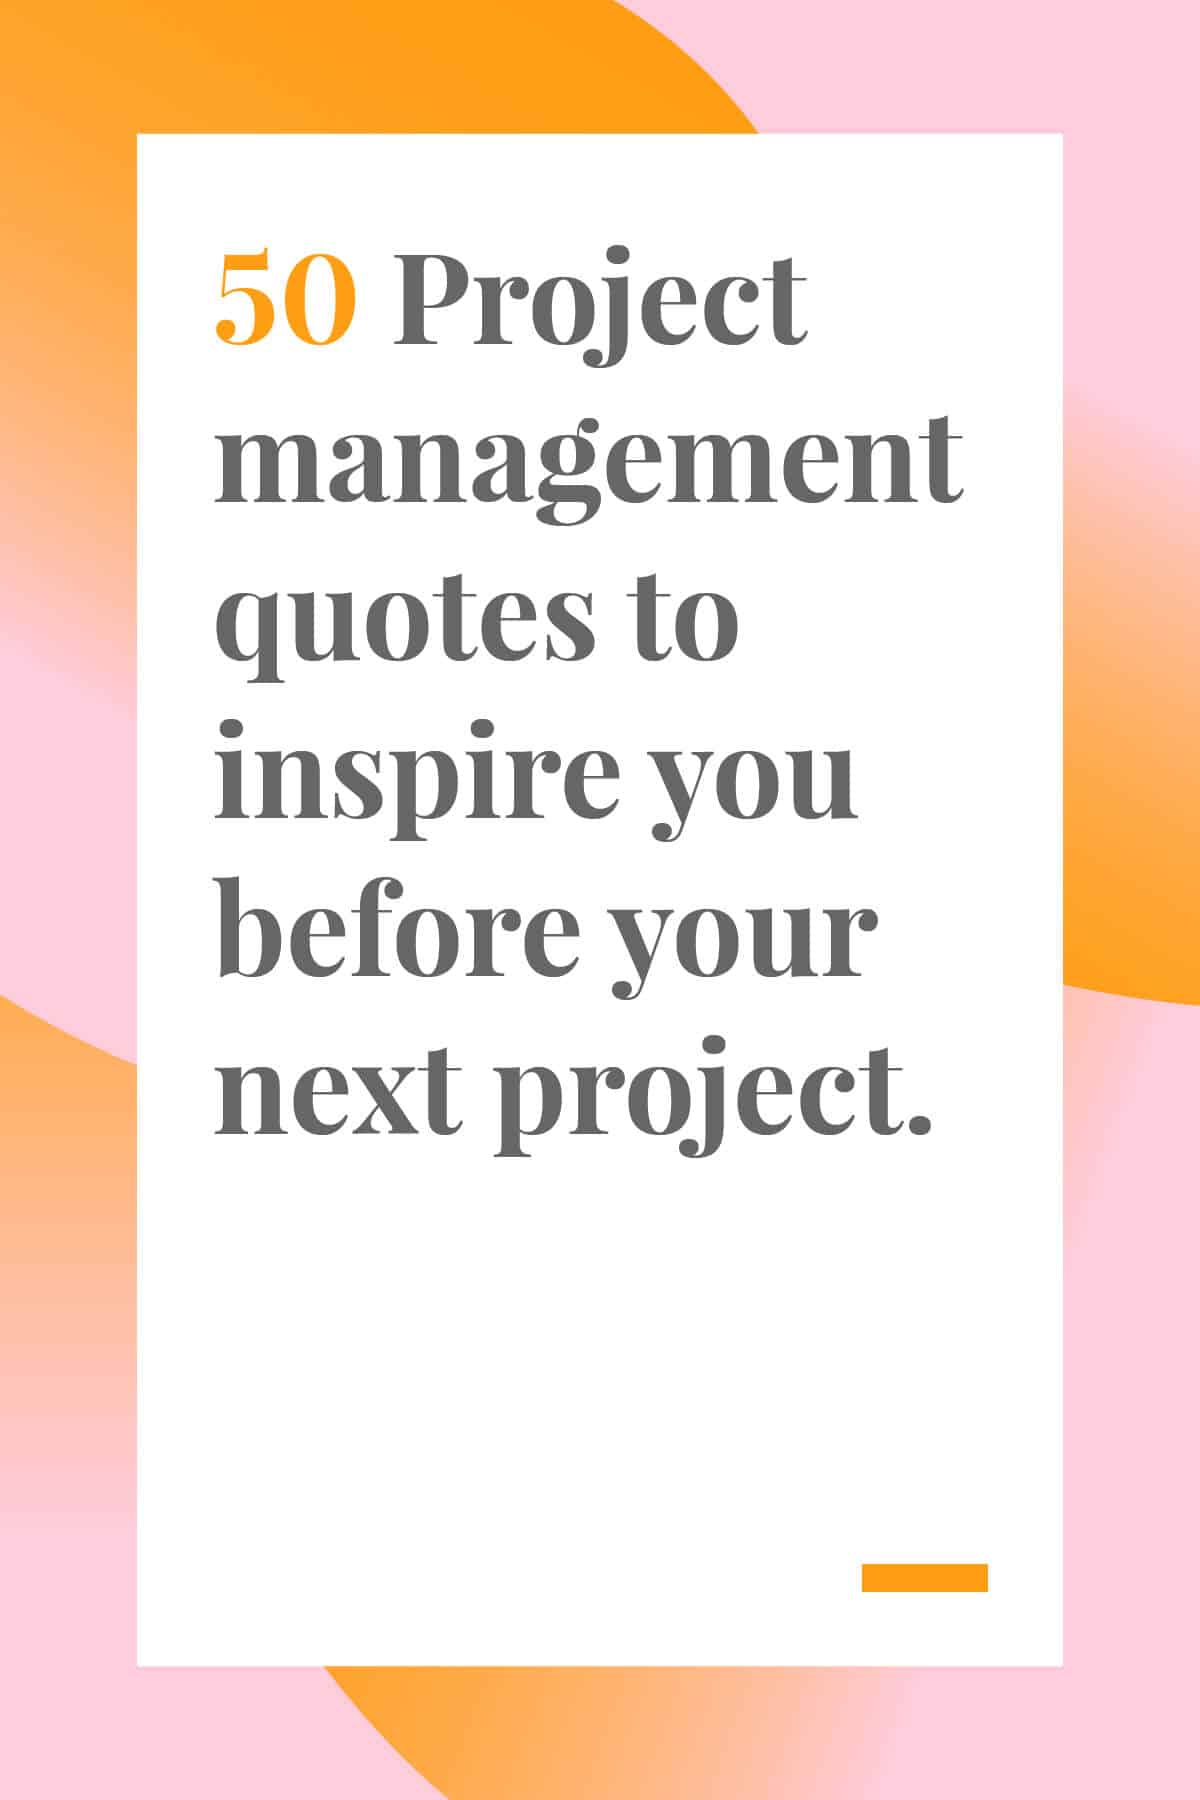 These 50 project management quotes will inspire you and your team before your next project. #quotes #projectmanagement